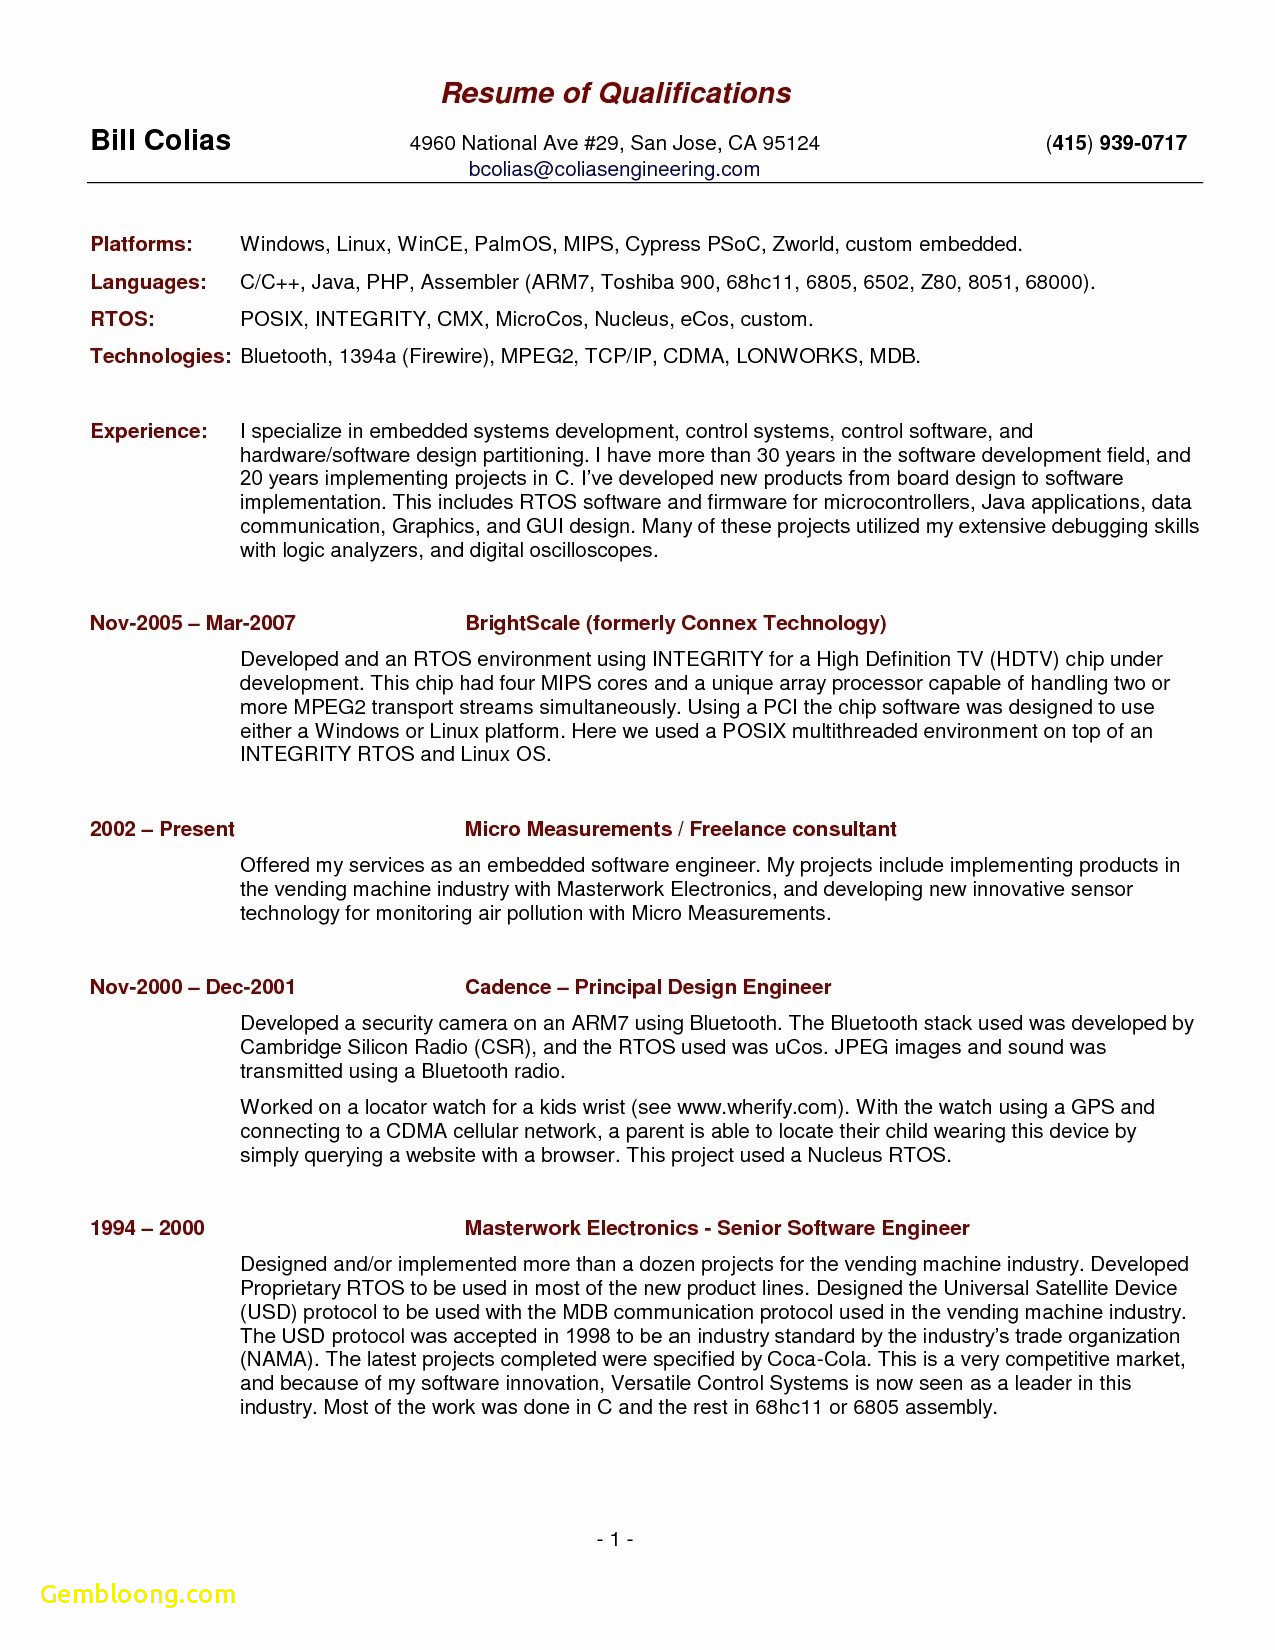 Plain Text Resume Template - Download Awesome Pr Resume